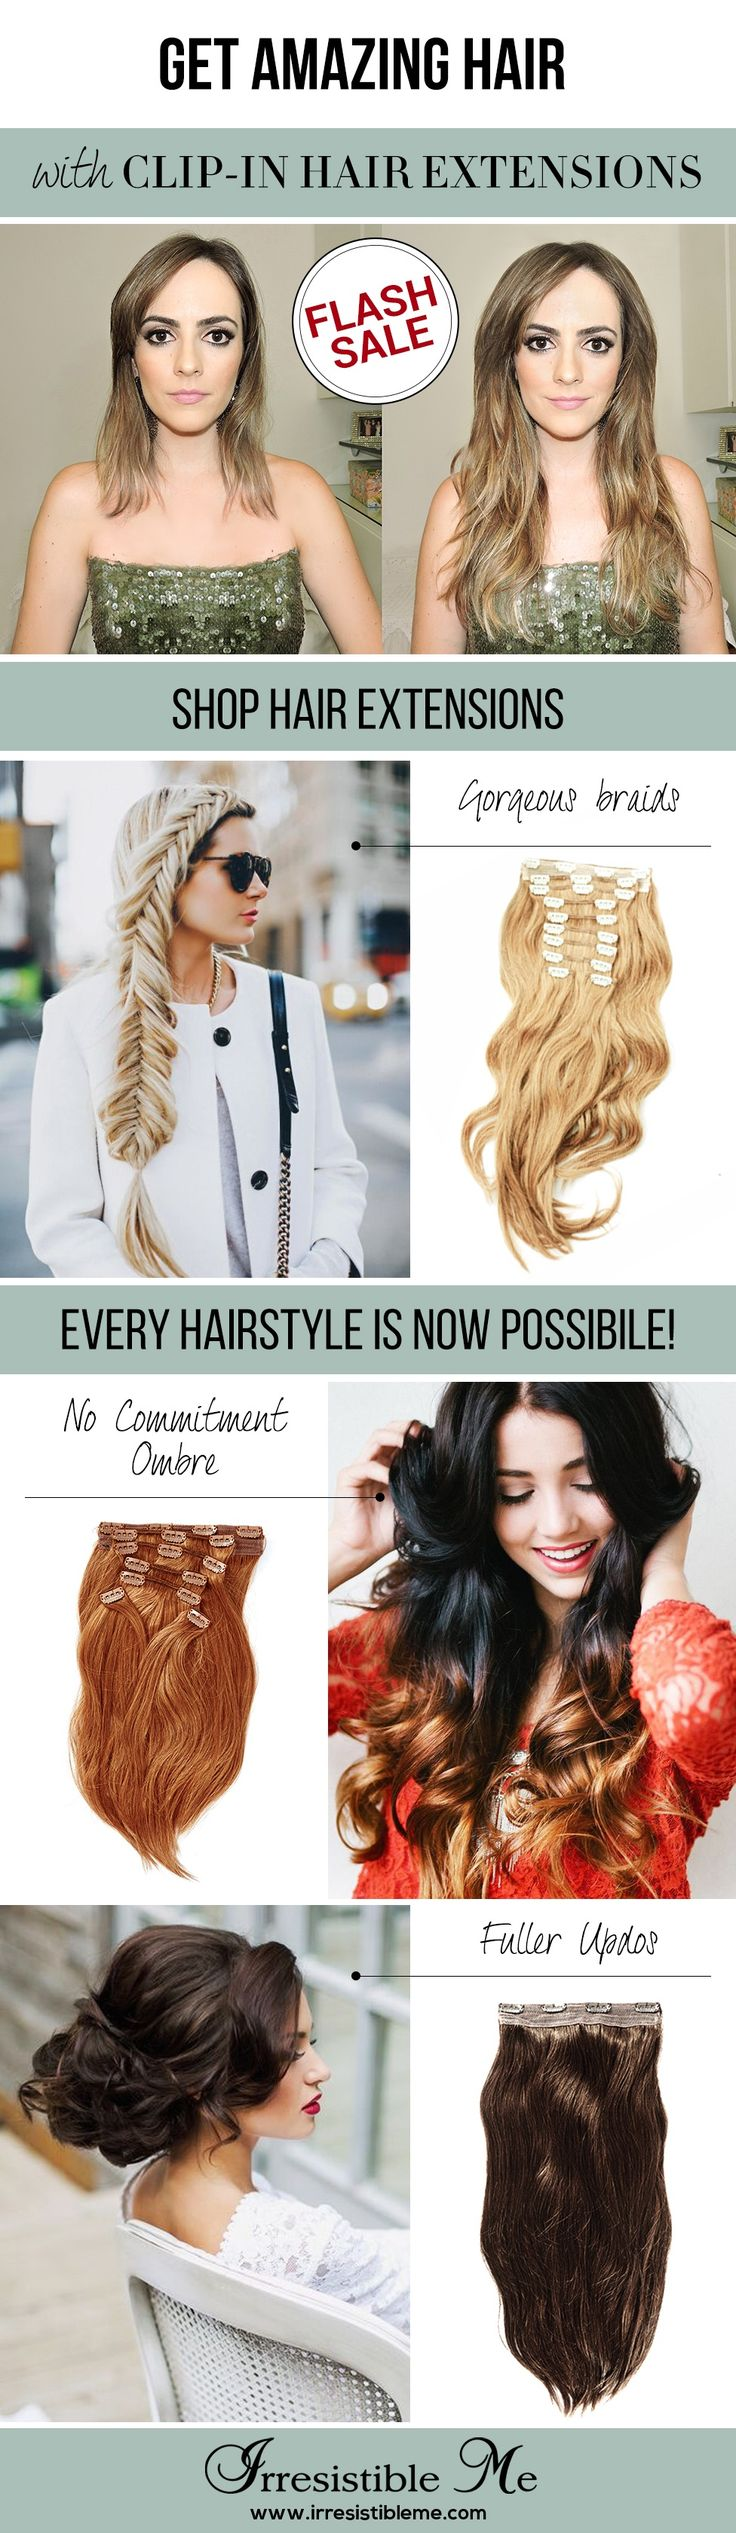 487 Best Irresistible Me Clip In Hair Extensions Images On Pinterest